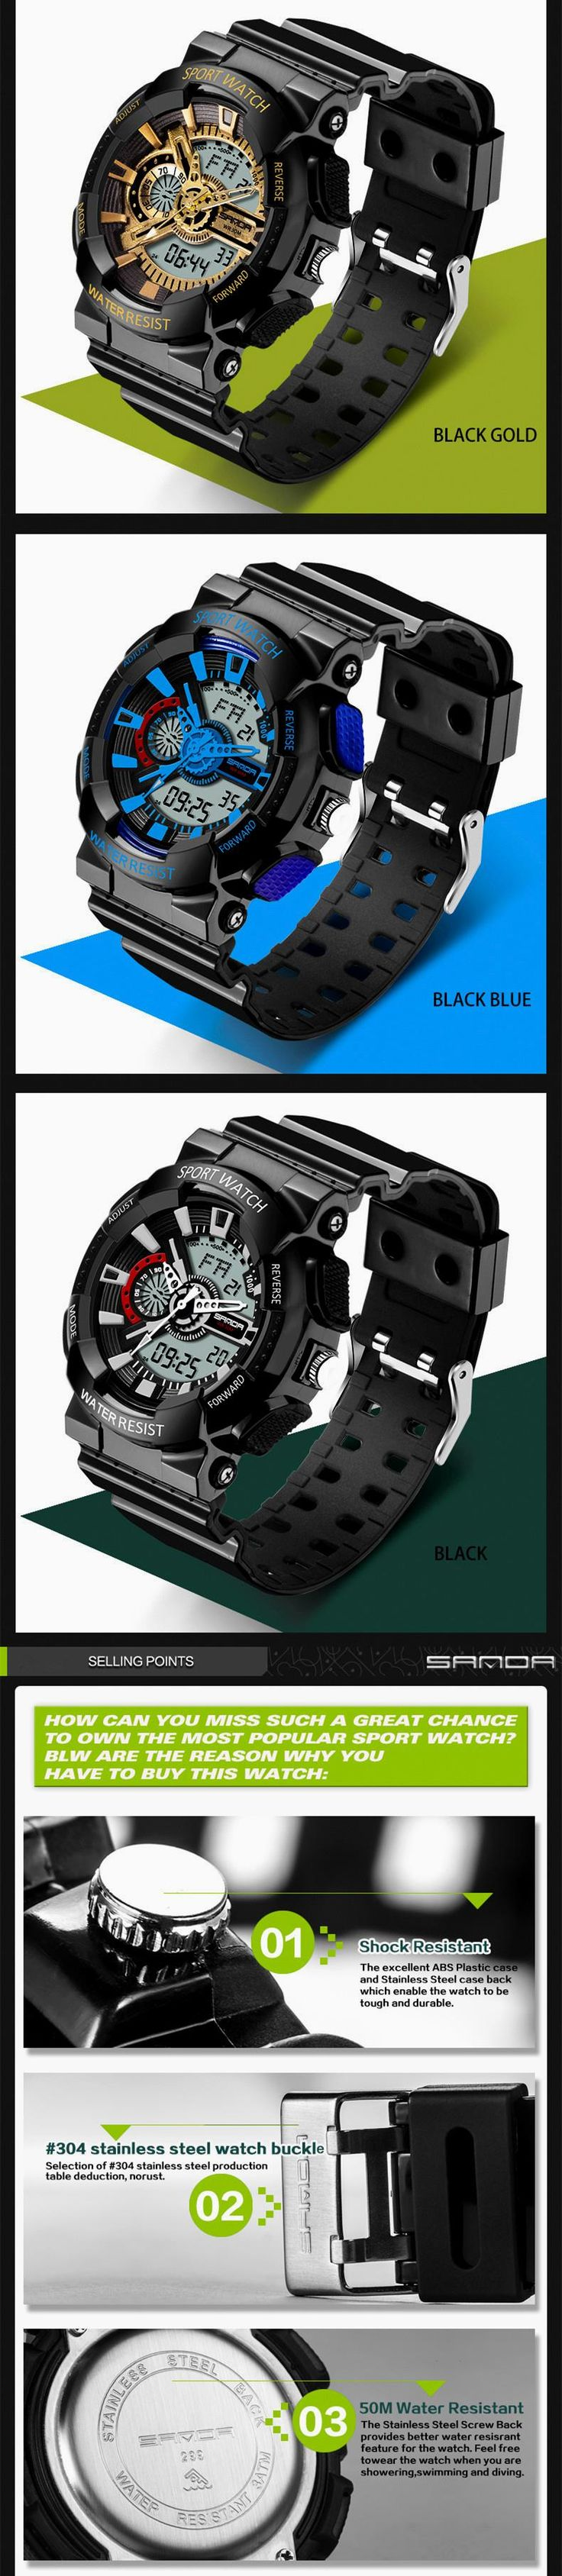 2016 new listing fashion watches men watch waterproof sport military G style S Shock watches men's